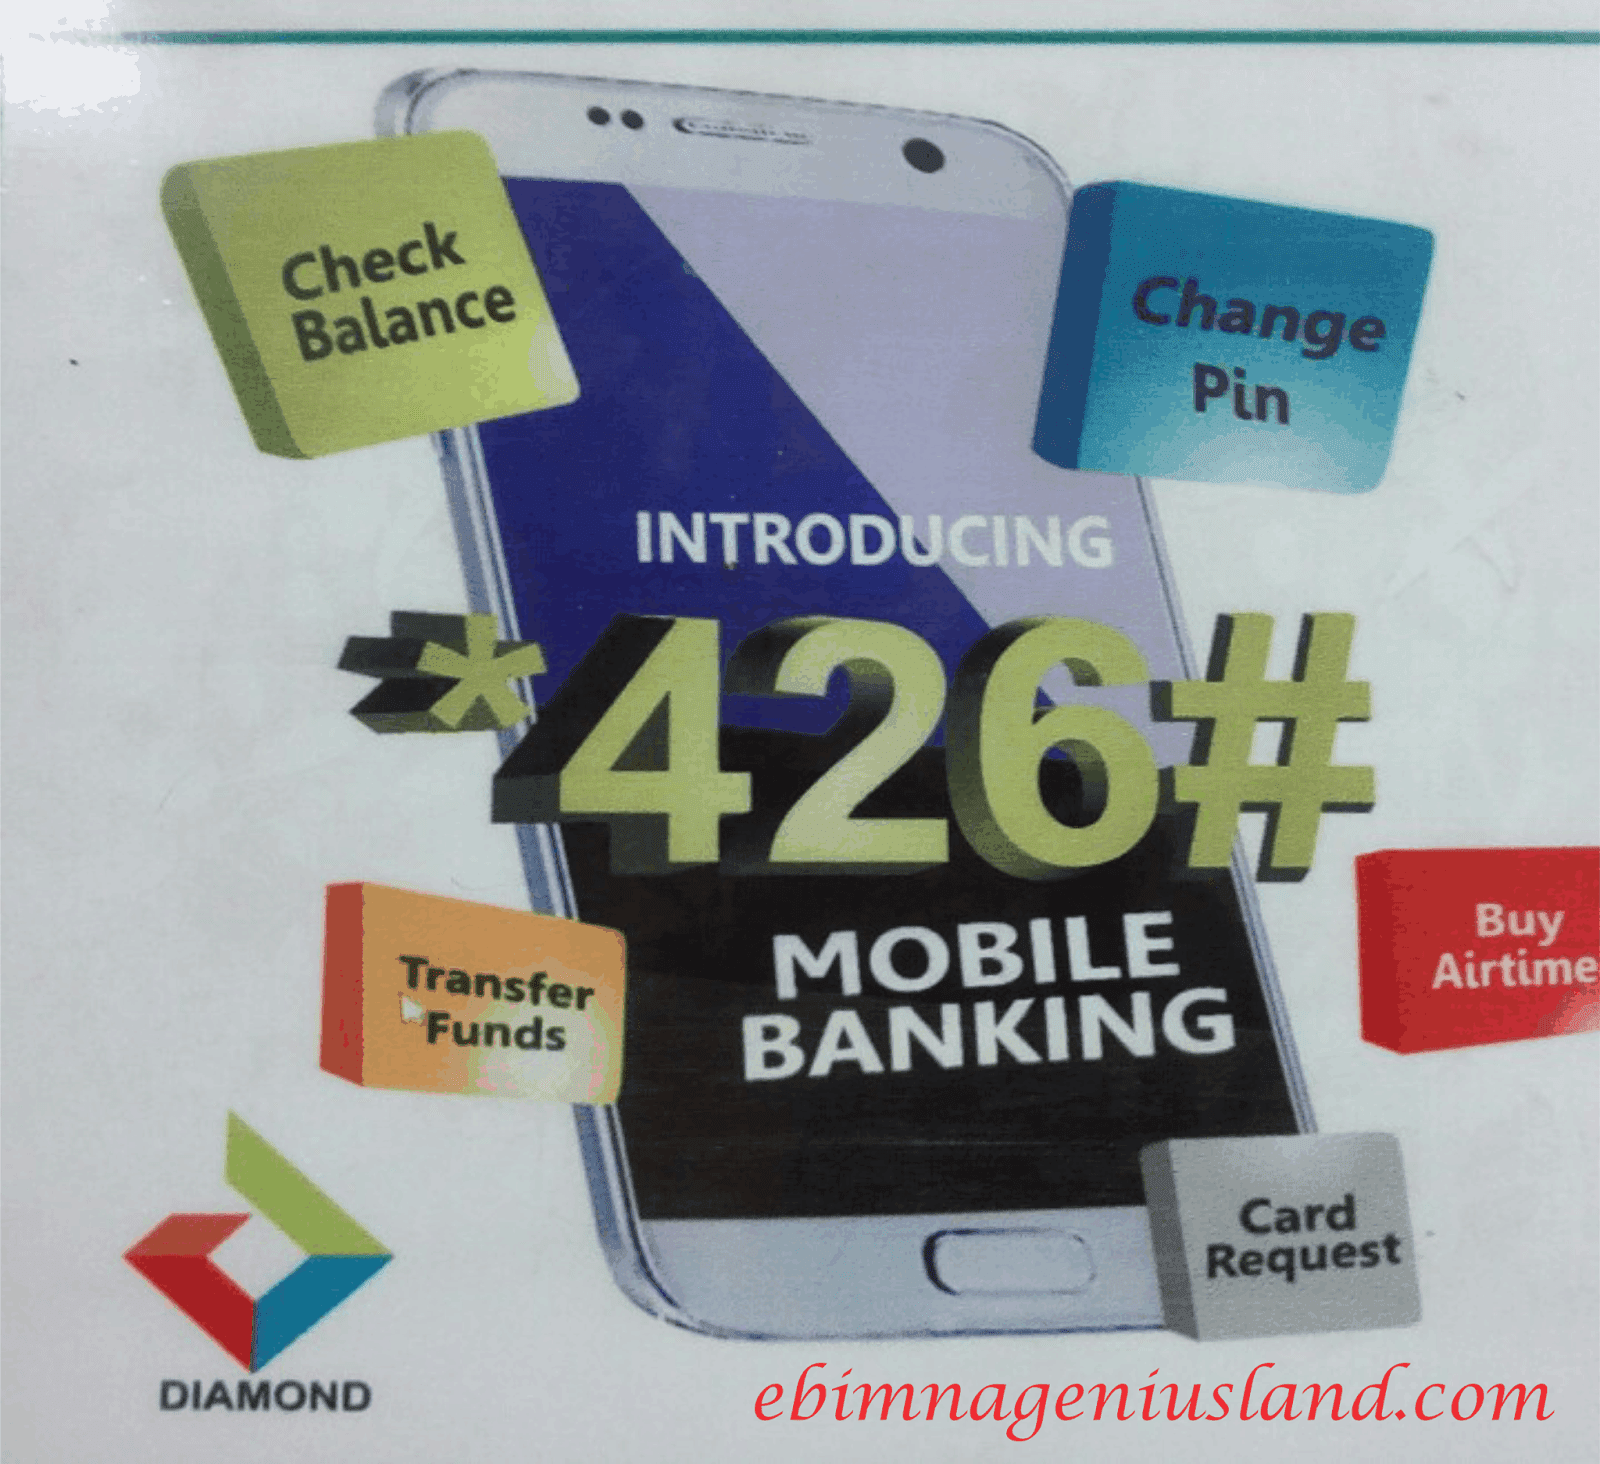 Diamond Bank Has Finally Introduced The Simplest Mobile Banking Code